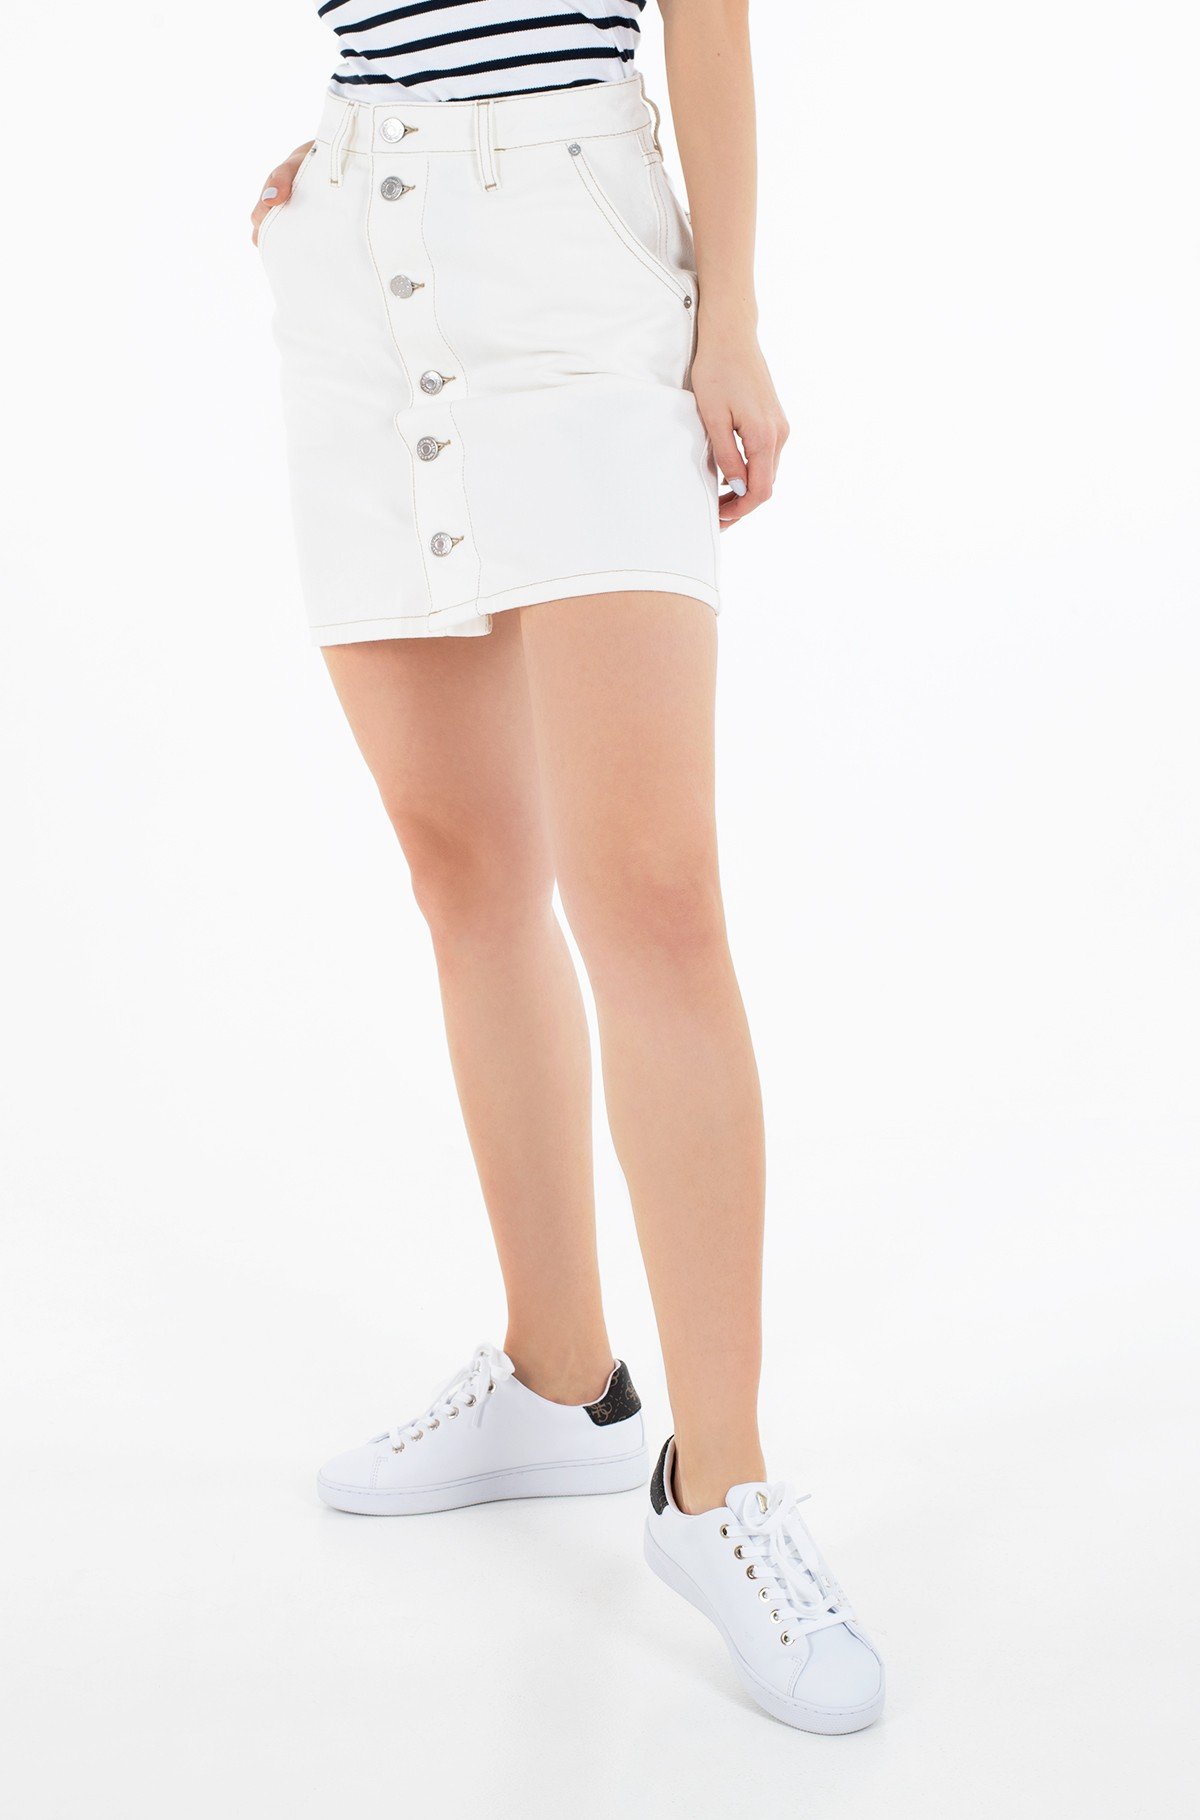 Teksaseelik A-LINE SHORT DENIM SKIRT SSPWR-full-1